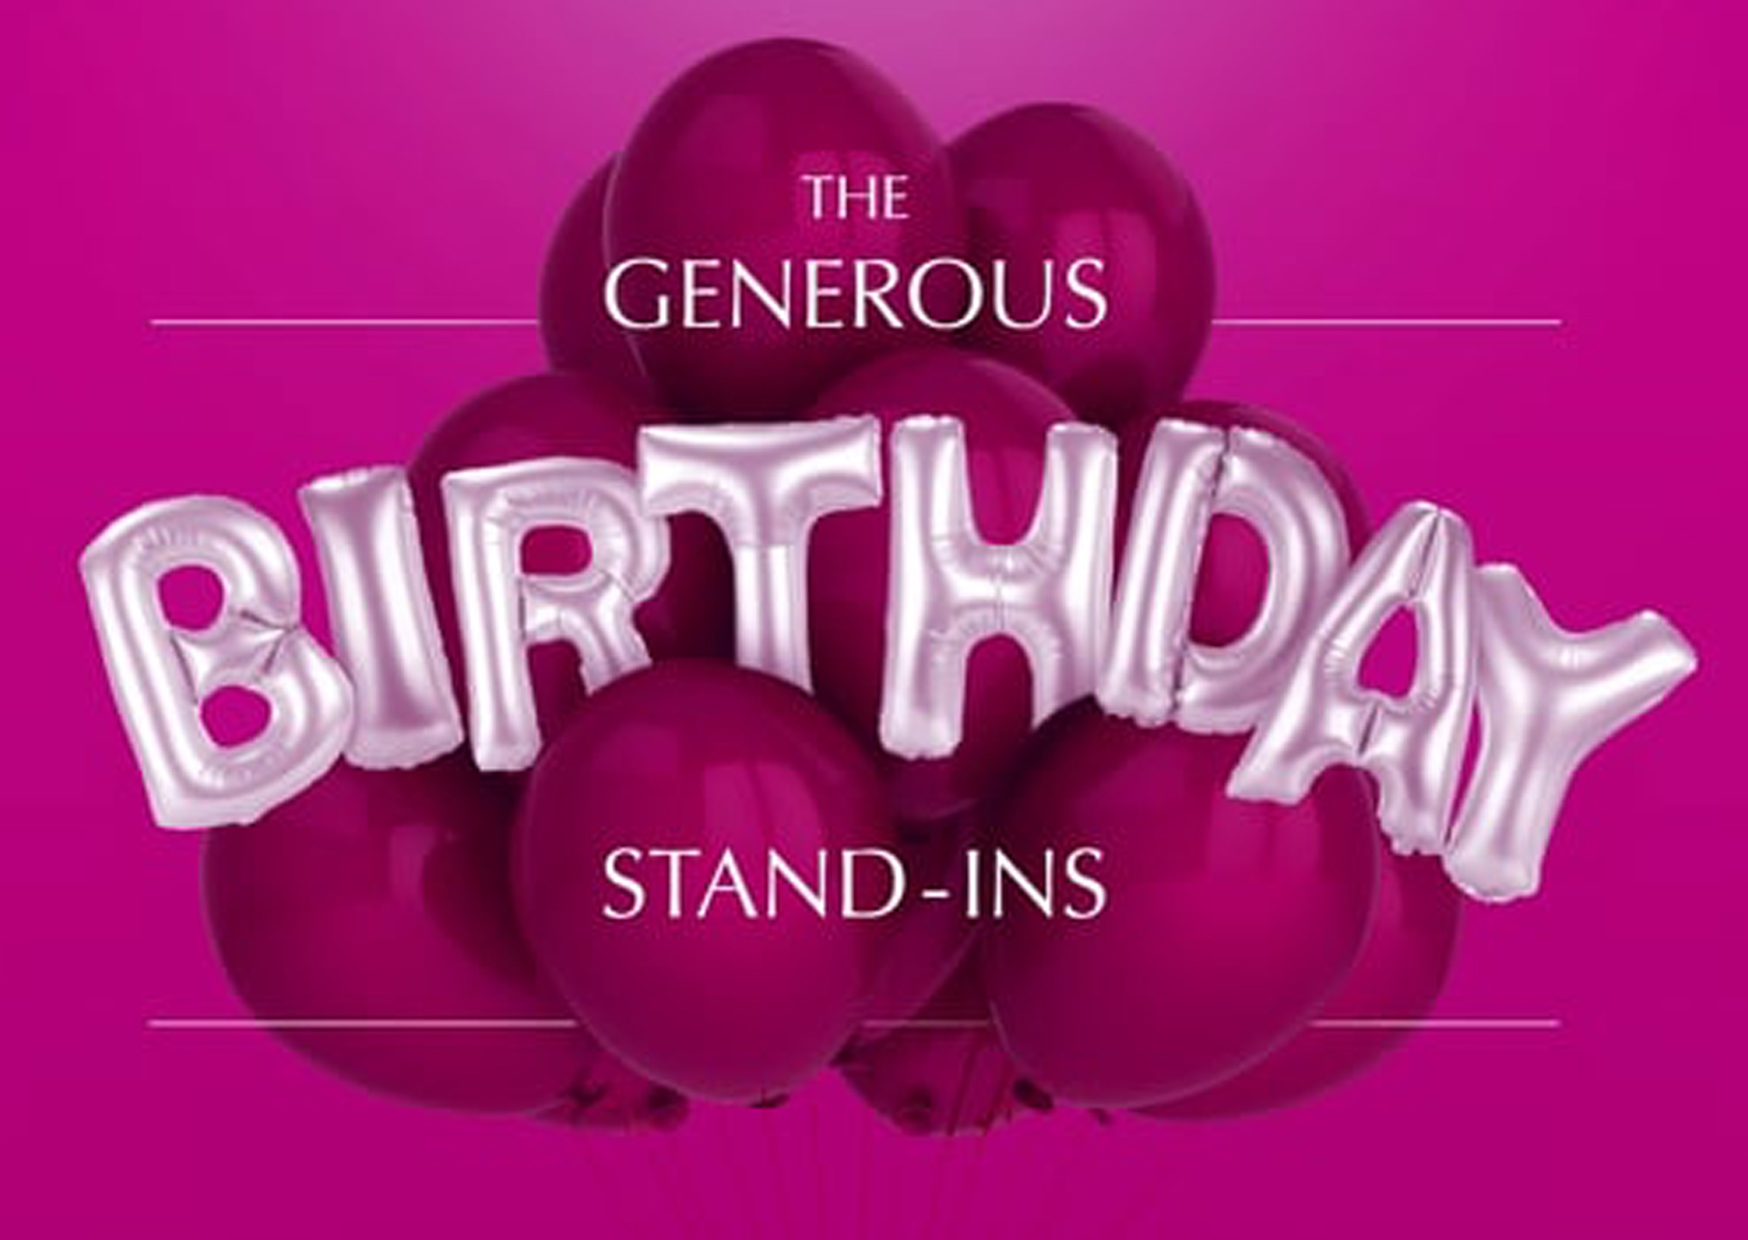 ANTHON BERG - The Generous Birthday Stand-ins